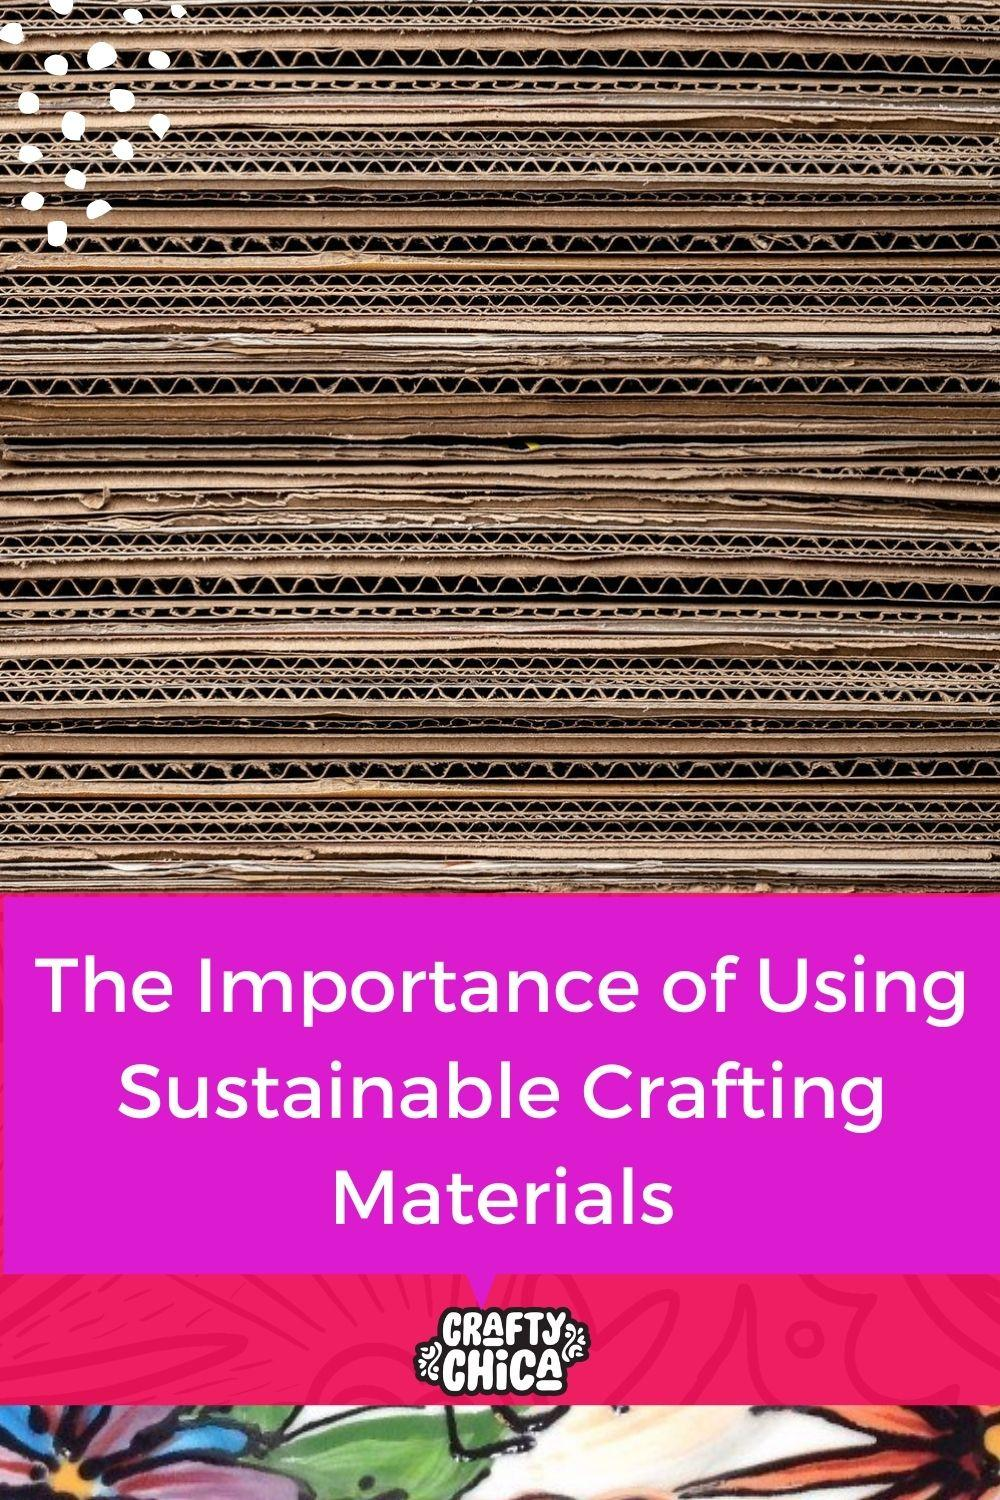 The Importance of Using Sustainable Crafting Materials